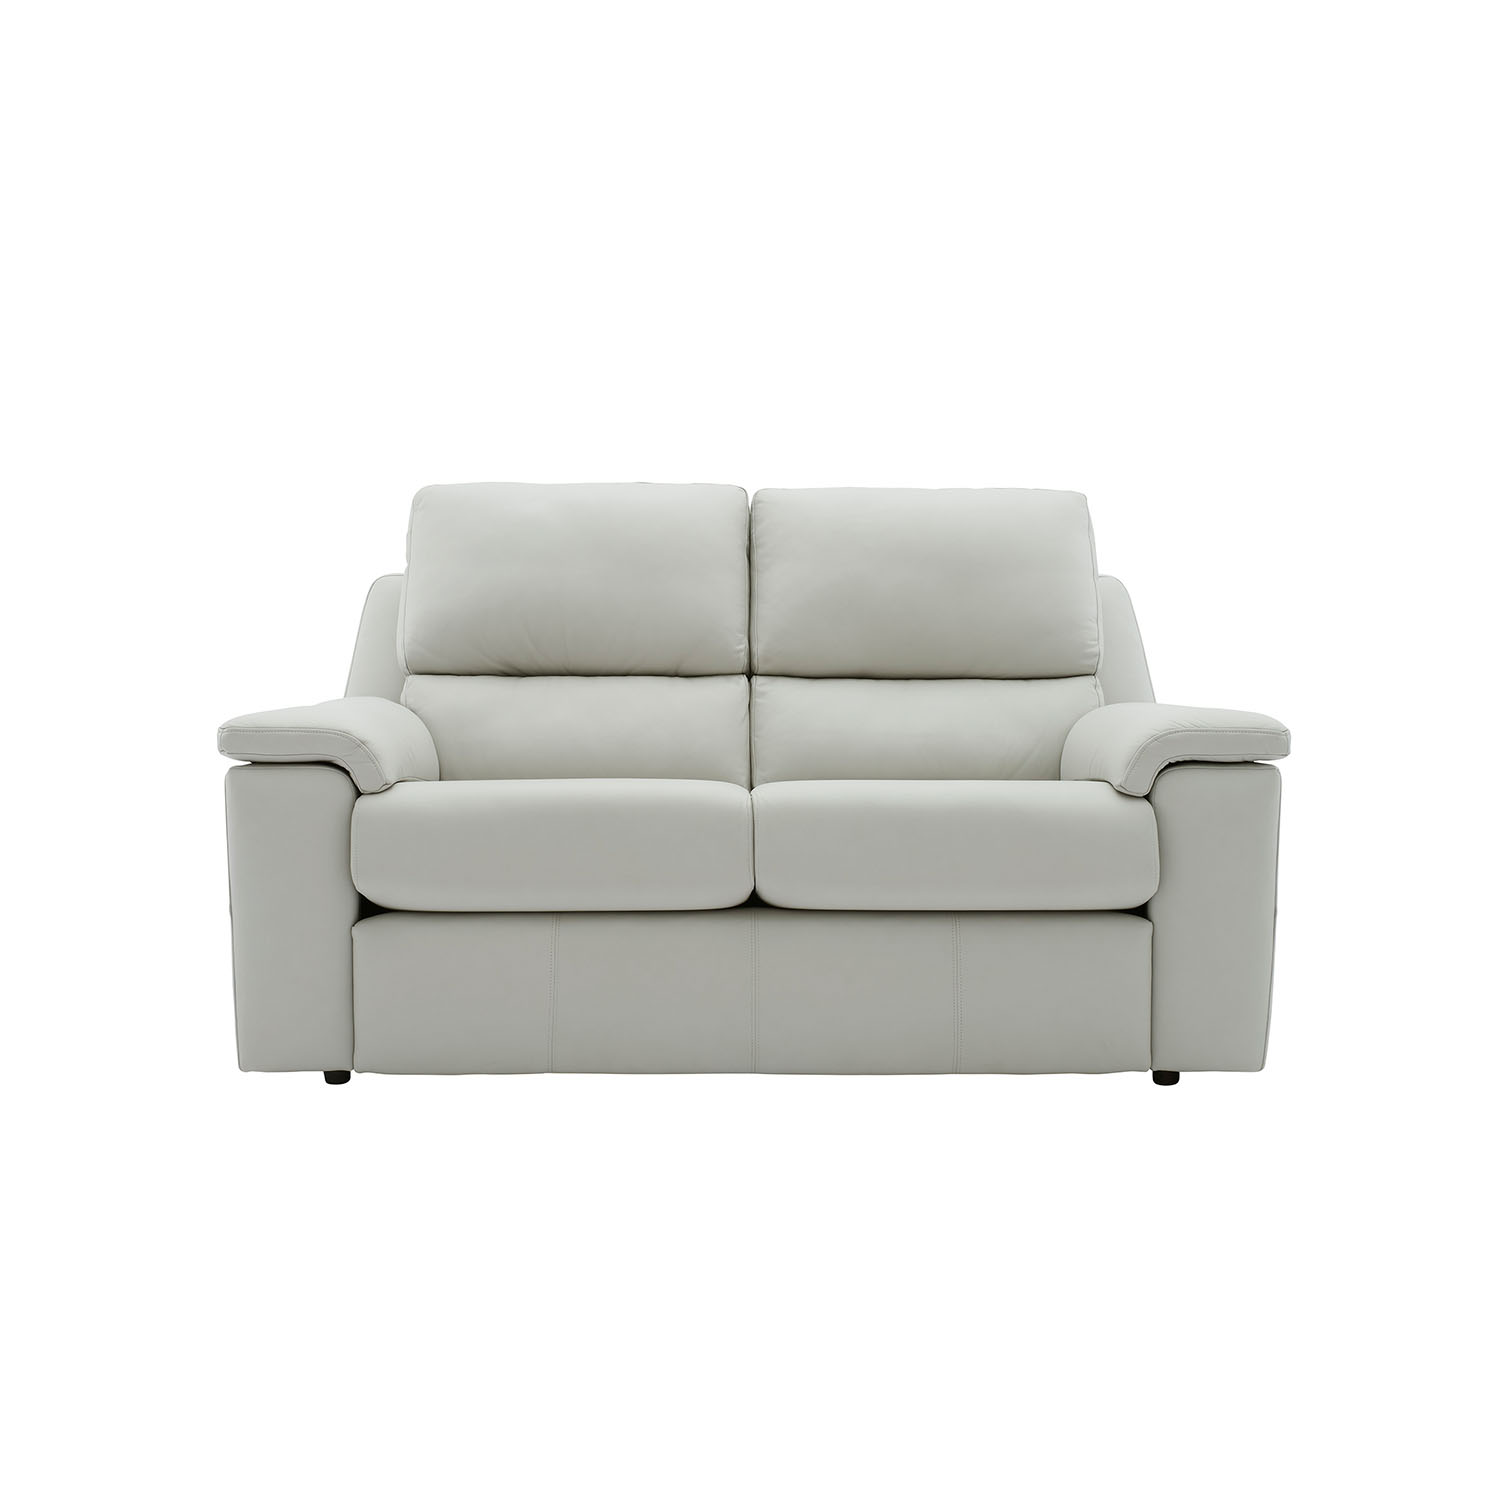 Image of G Plan Taylor 2 Seater Power Recliner Leather Sofa